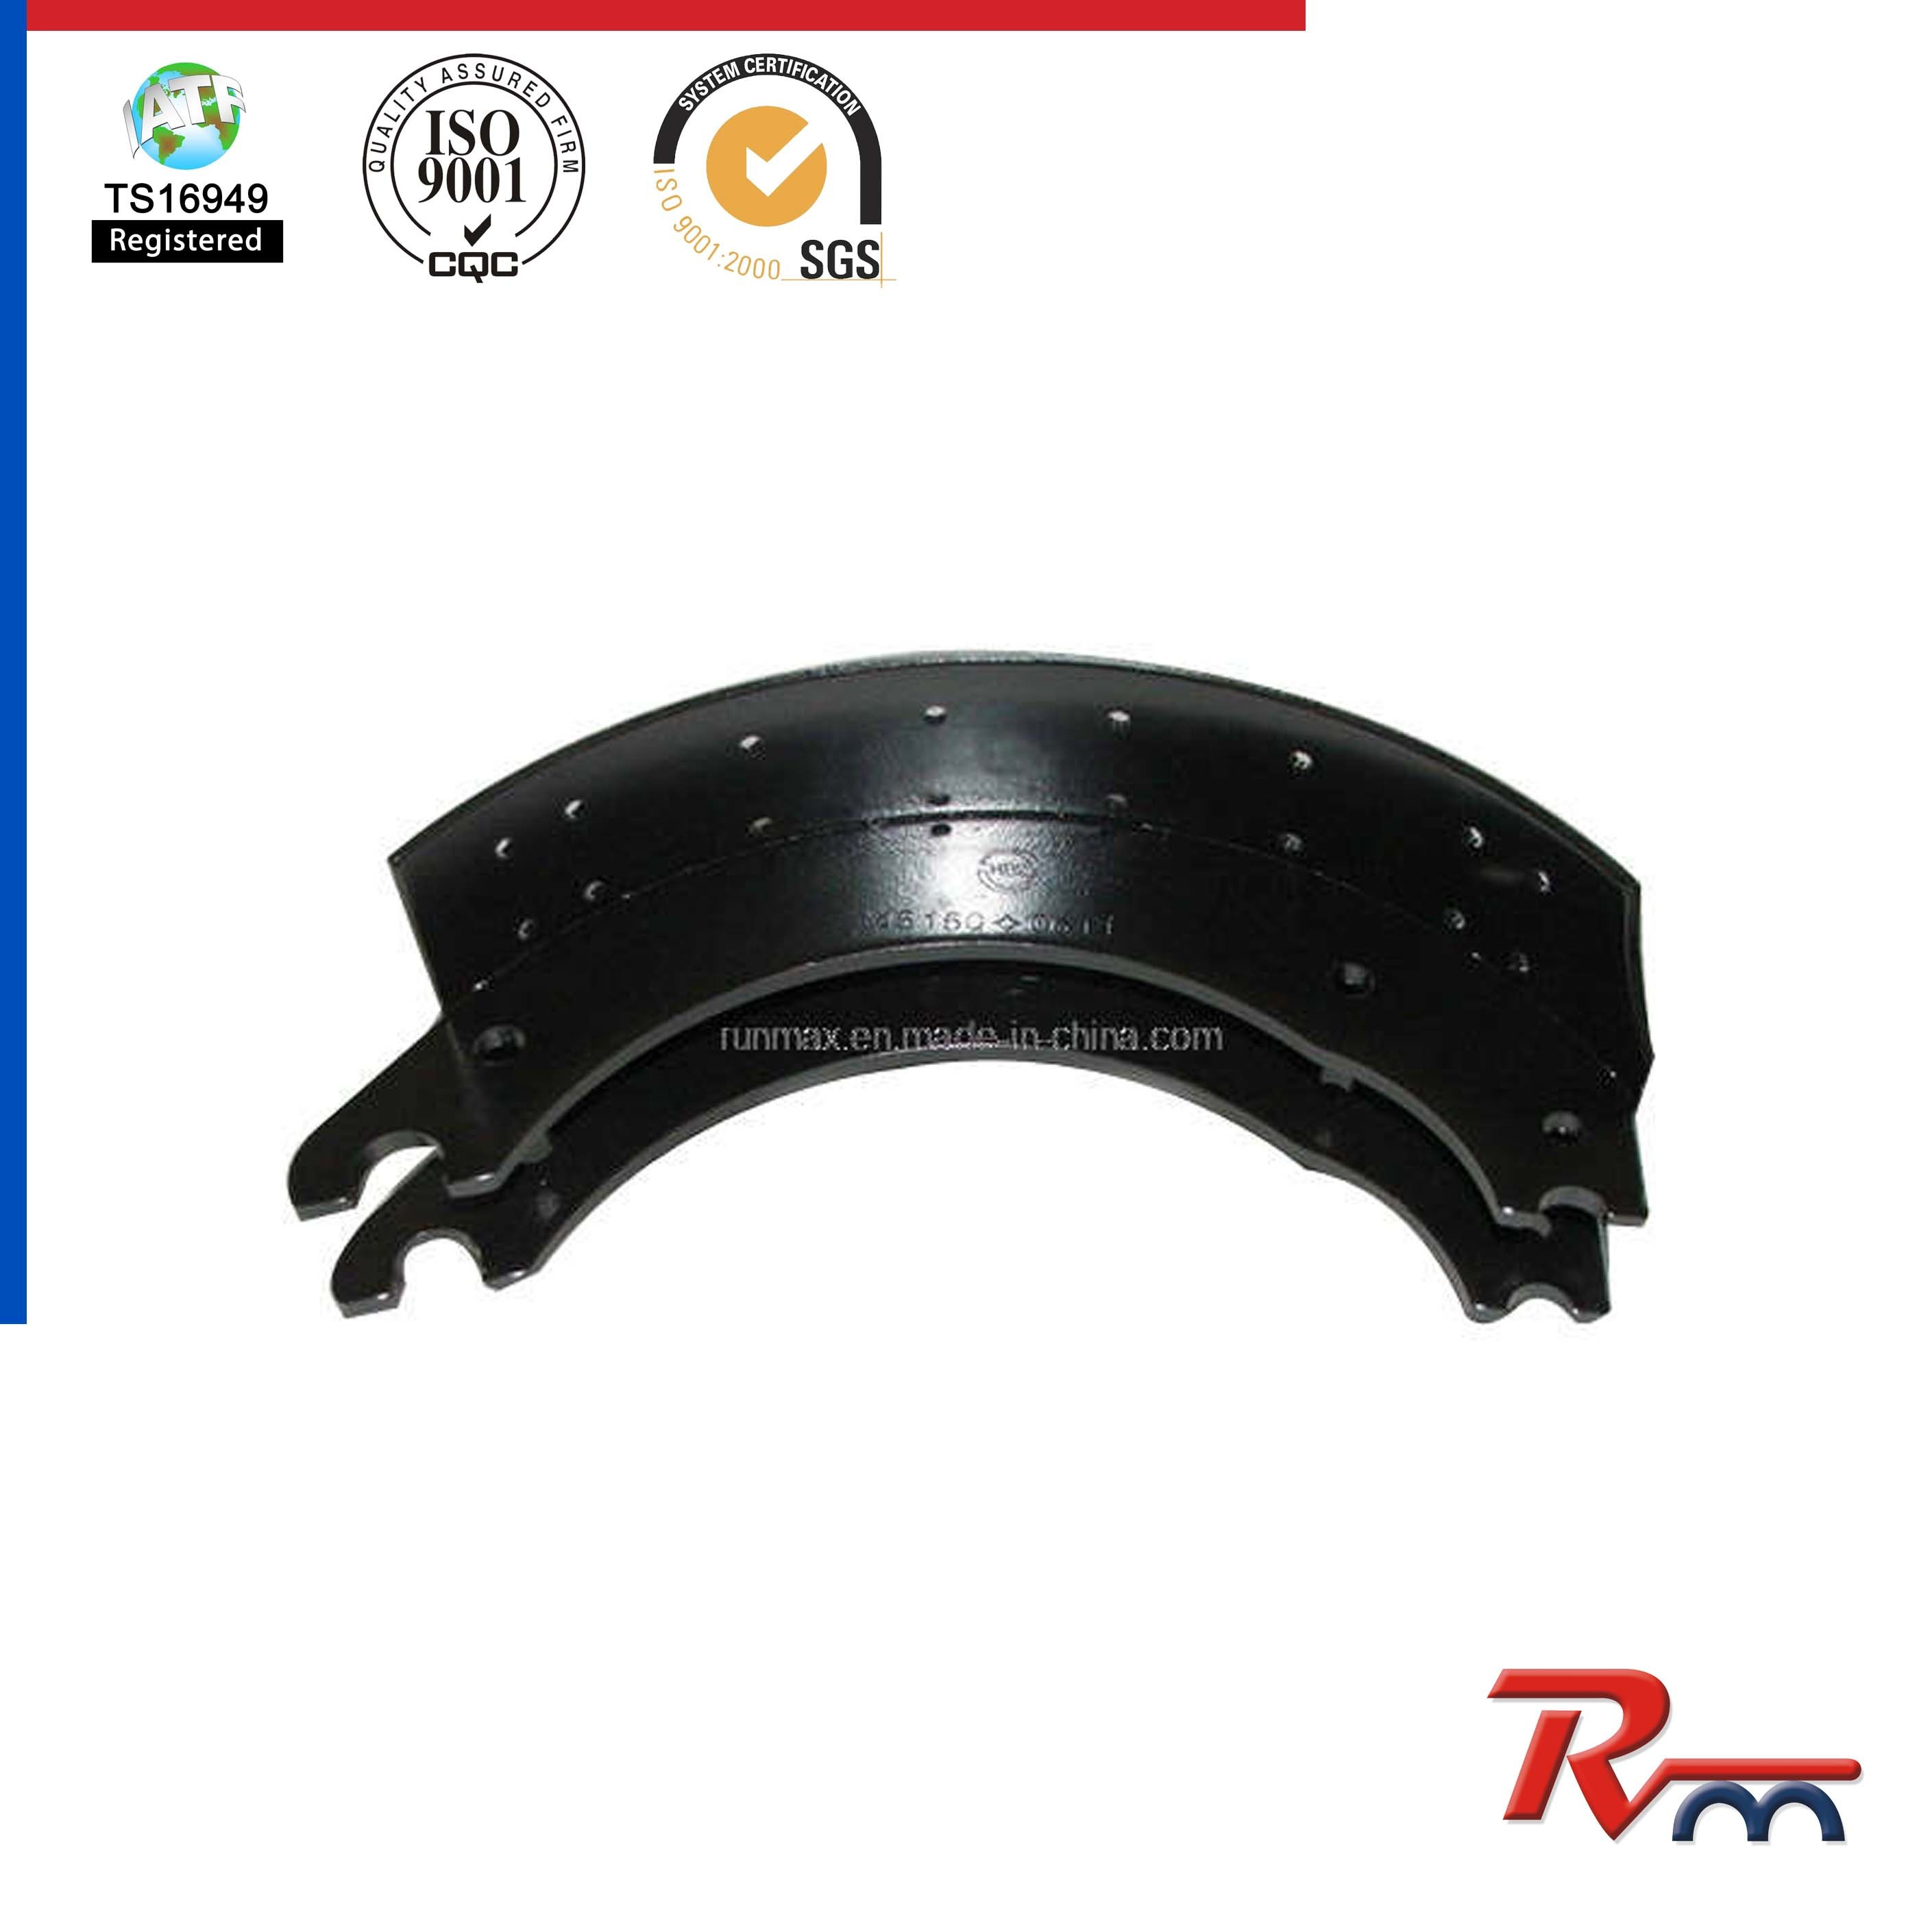 Brake Accessories for Heavy Truck and Semi-Trailer